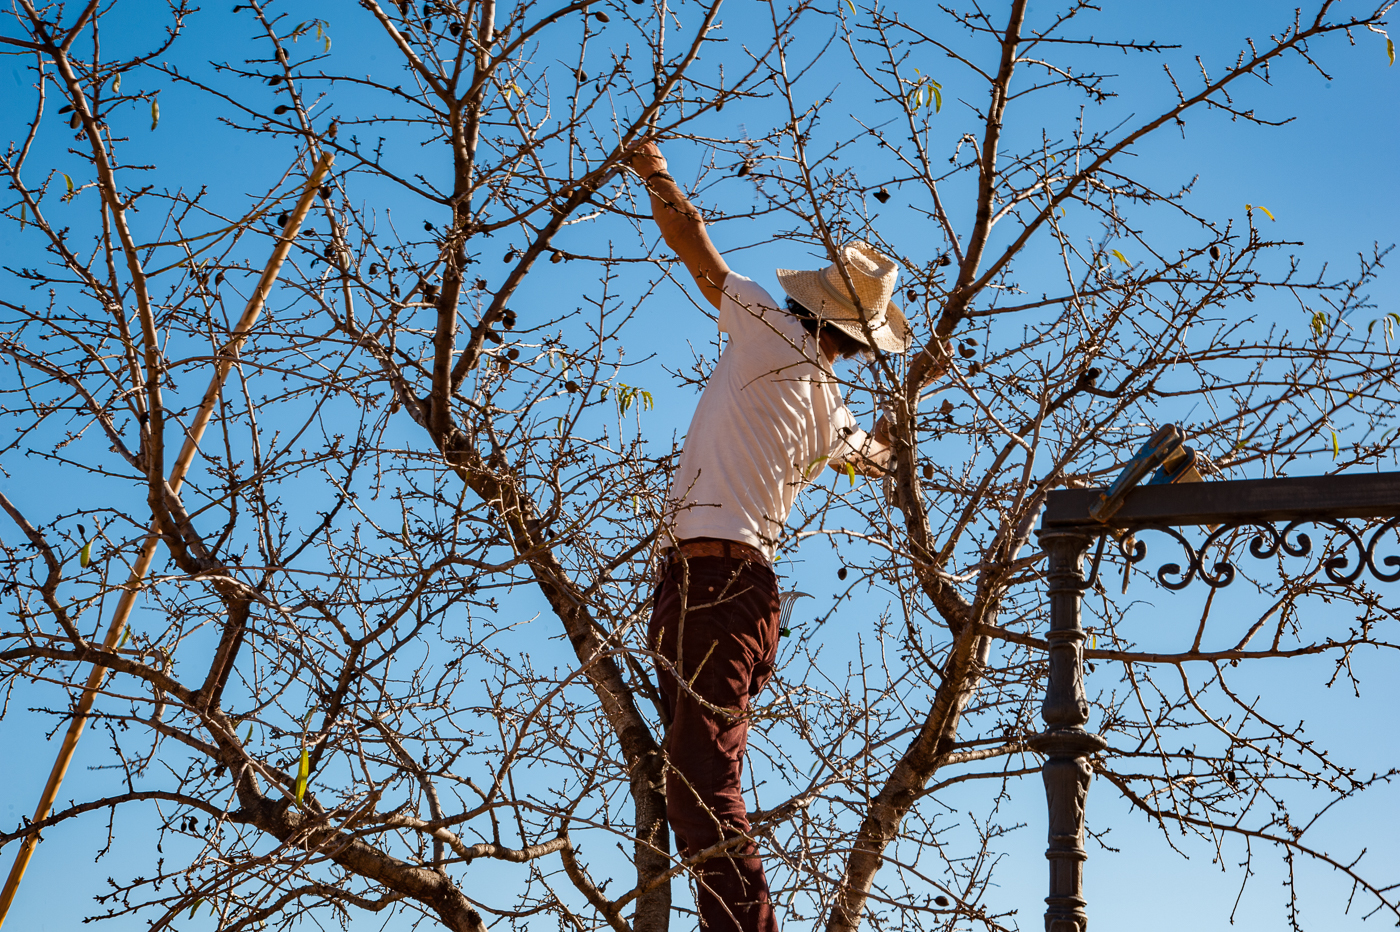 Pruning a too high tree and removing its last forgotten fruit